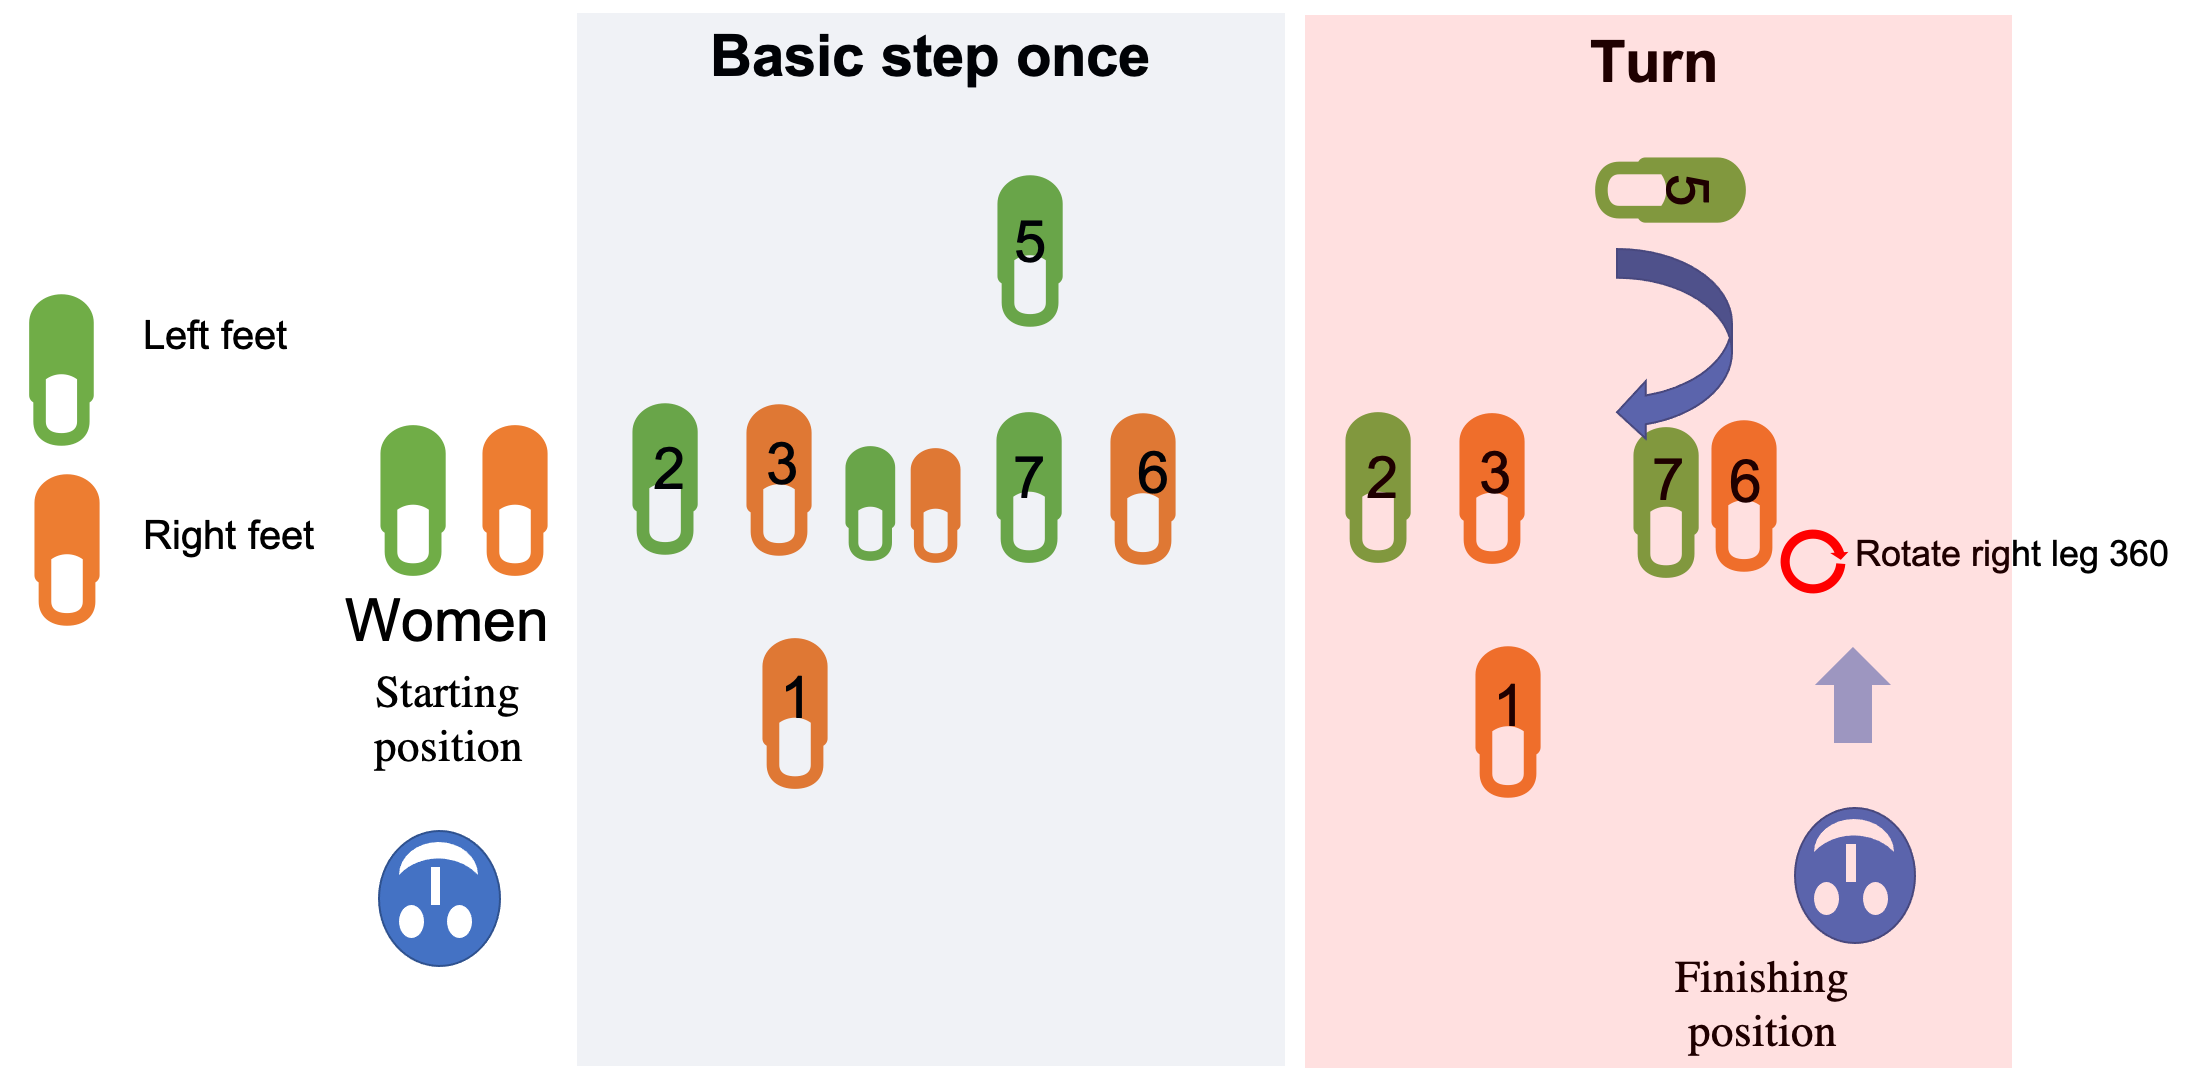 basic turn to dance salsa on 1 for ladies